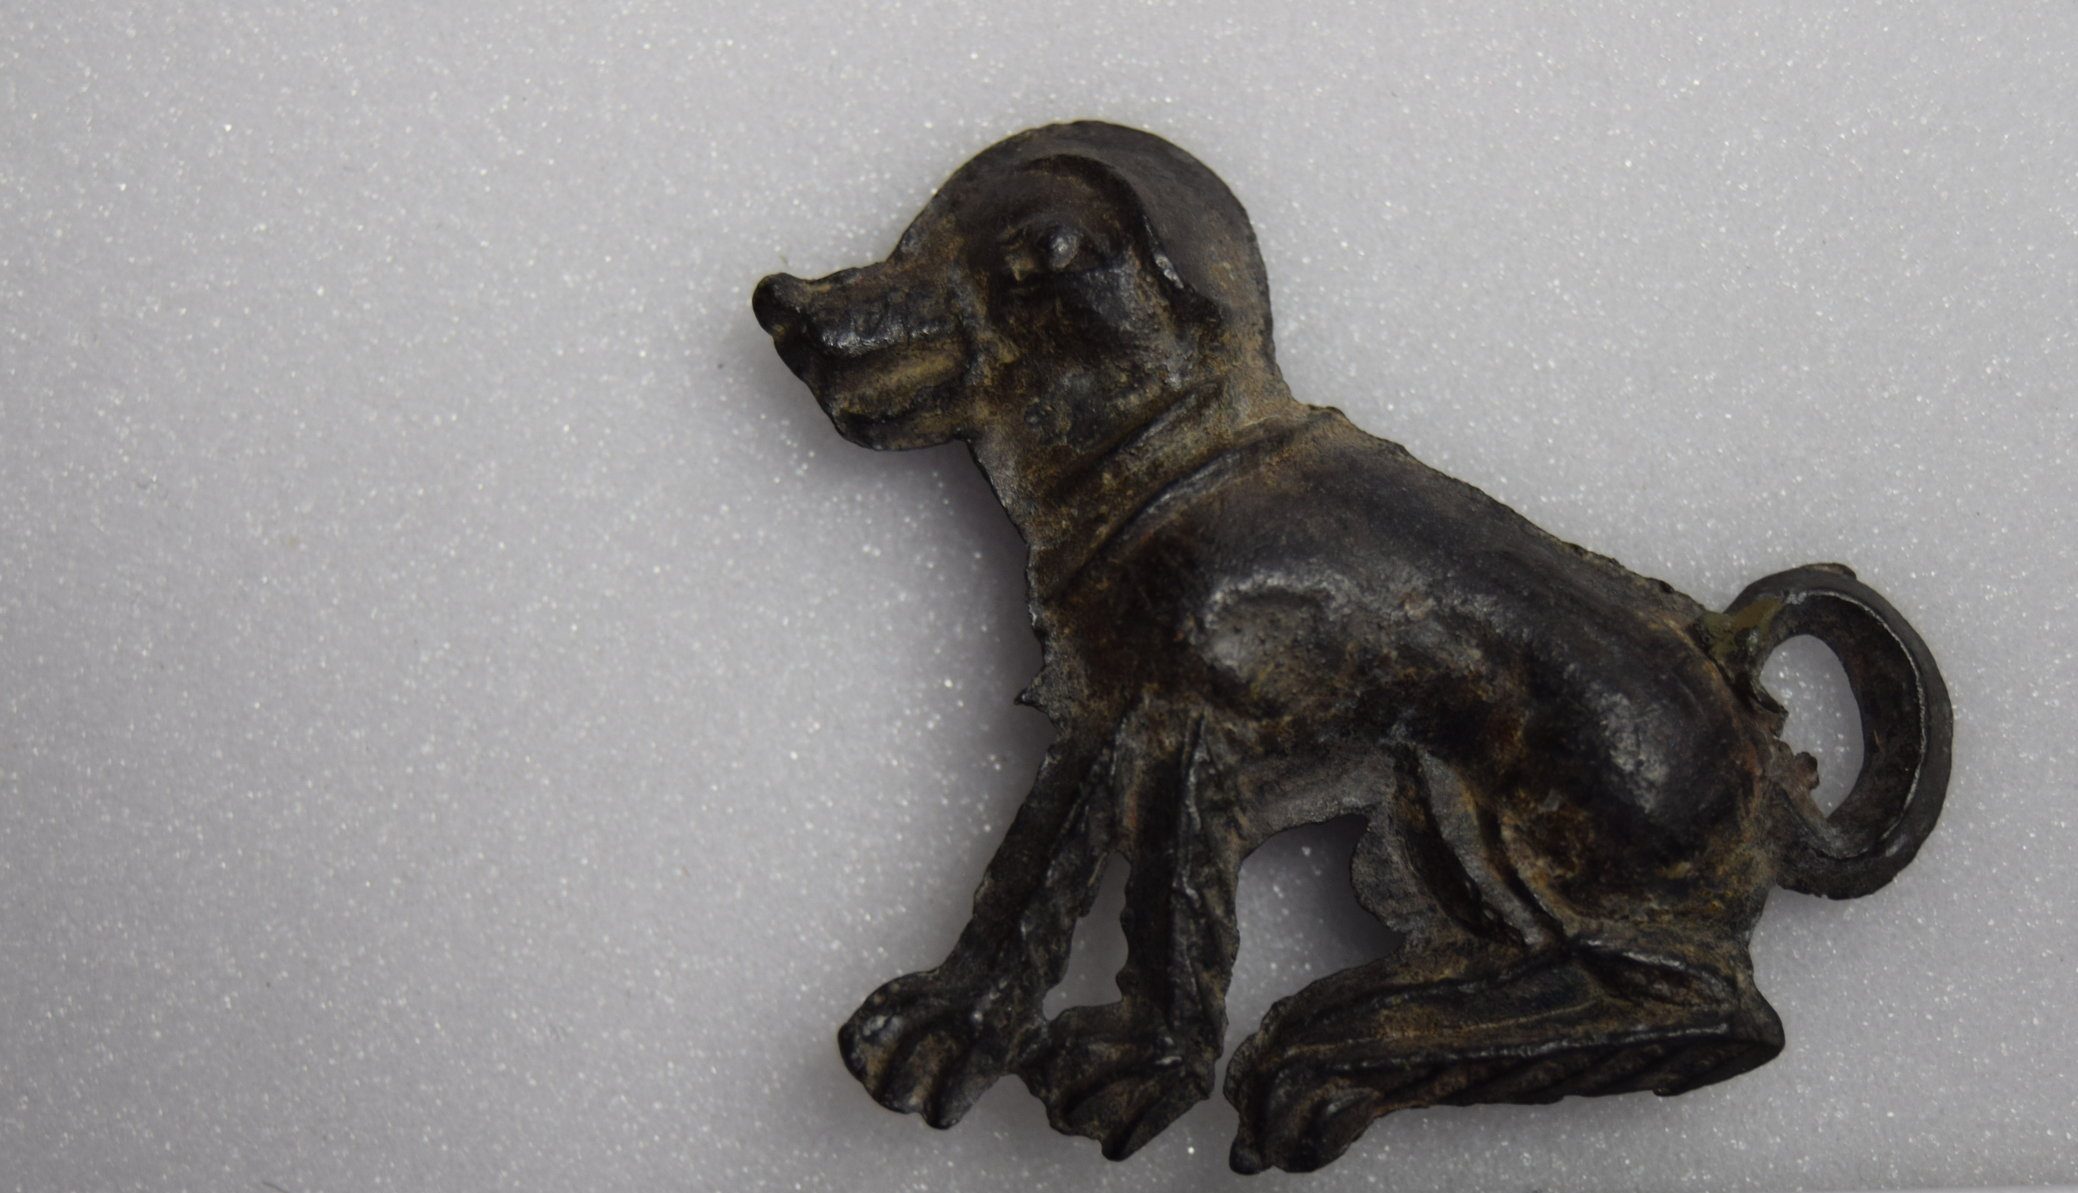 Lead Tin Alloy, seated dog wearing collar, King's Lynn, United Kingdom, 1000-1599, found in Purfleet Quay, 300 x 350 mm. King's Lynn, Lynn Museum, BP 100 (Kunera 07573). Photo courtesy of Shannon Phaneuf.